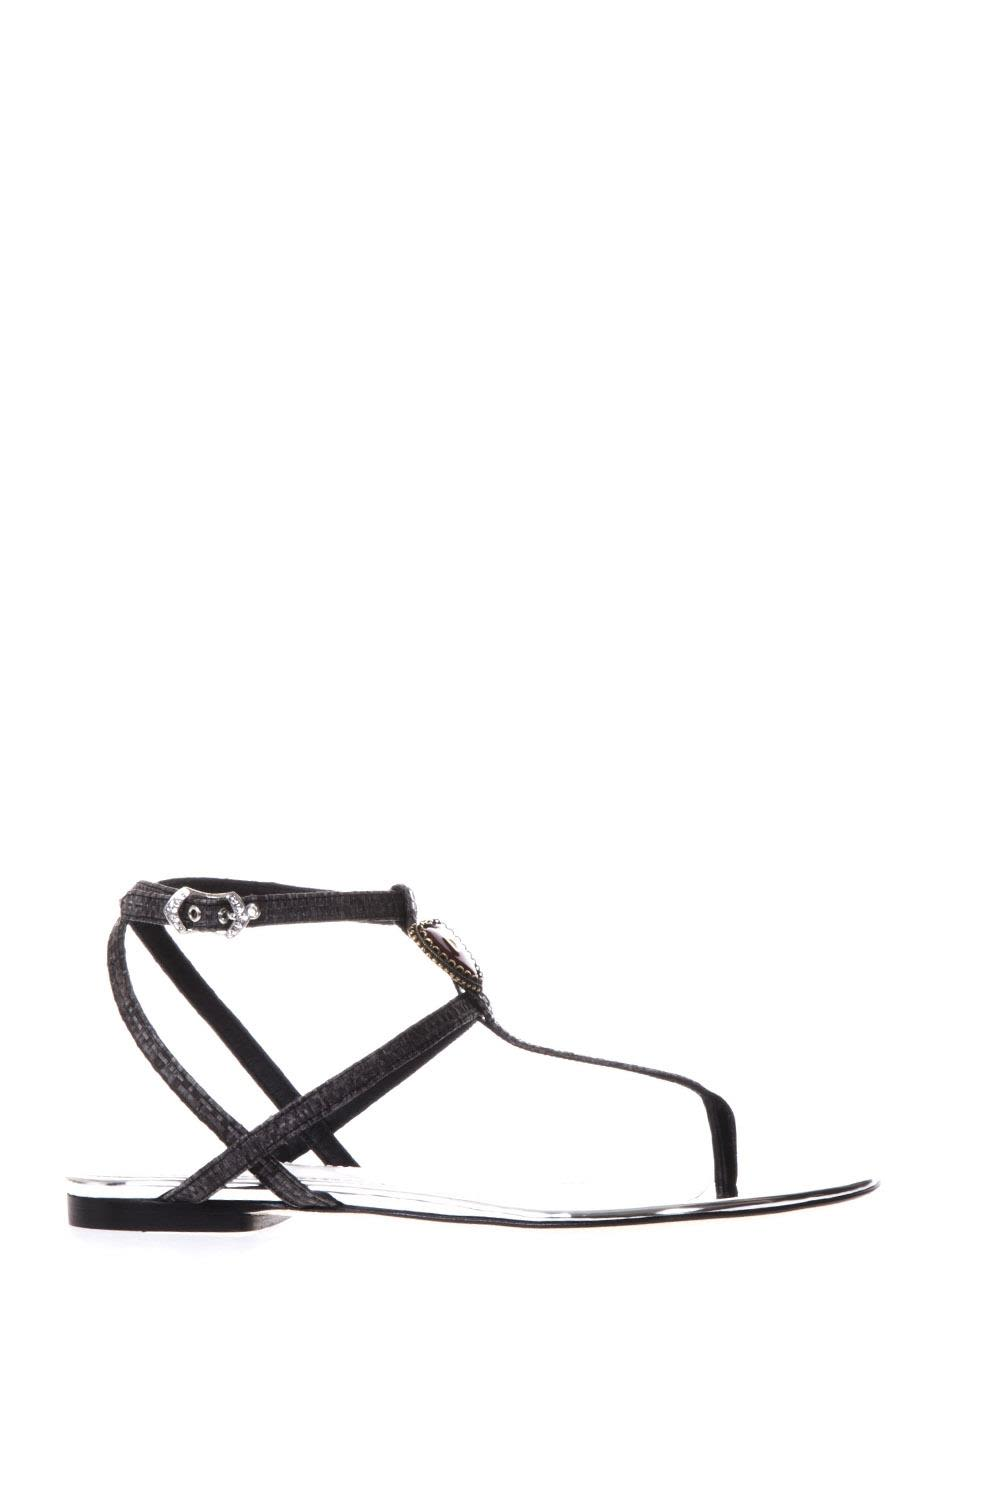 BLACK AND SILVER SANDALS WITH DOLCE & GABBANA LOGO